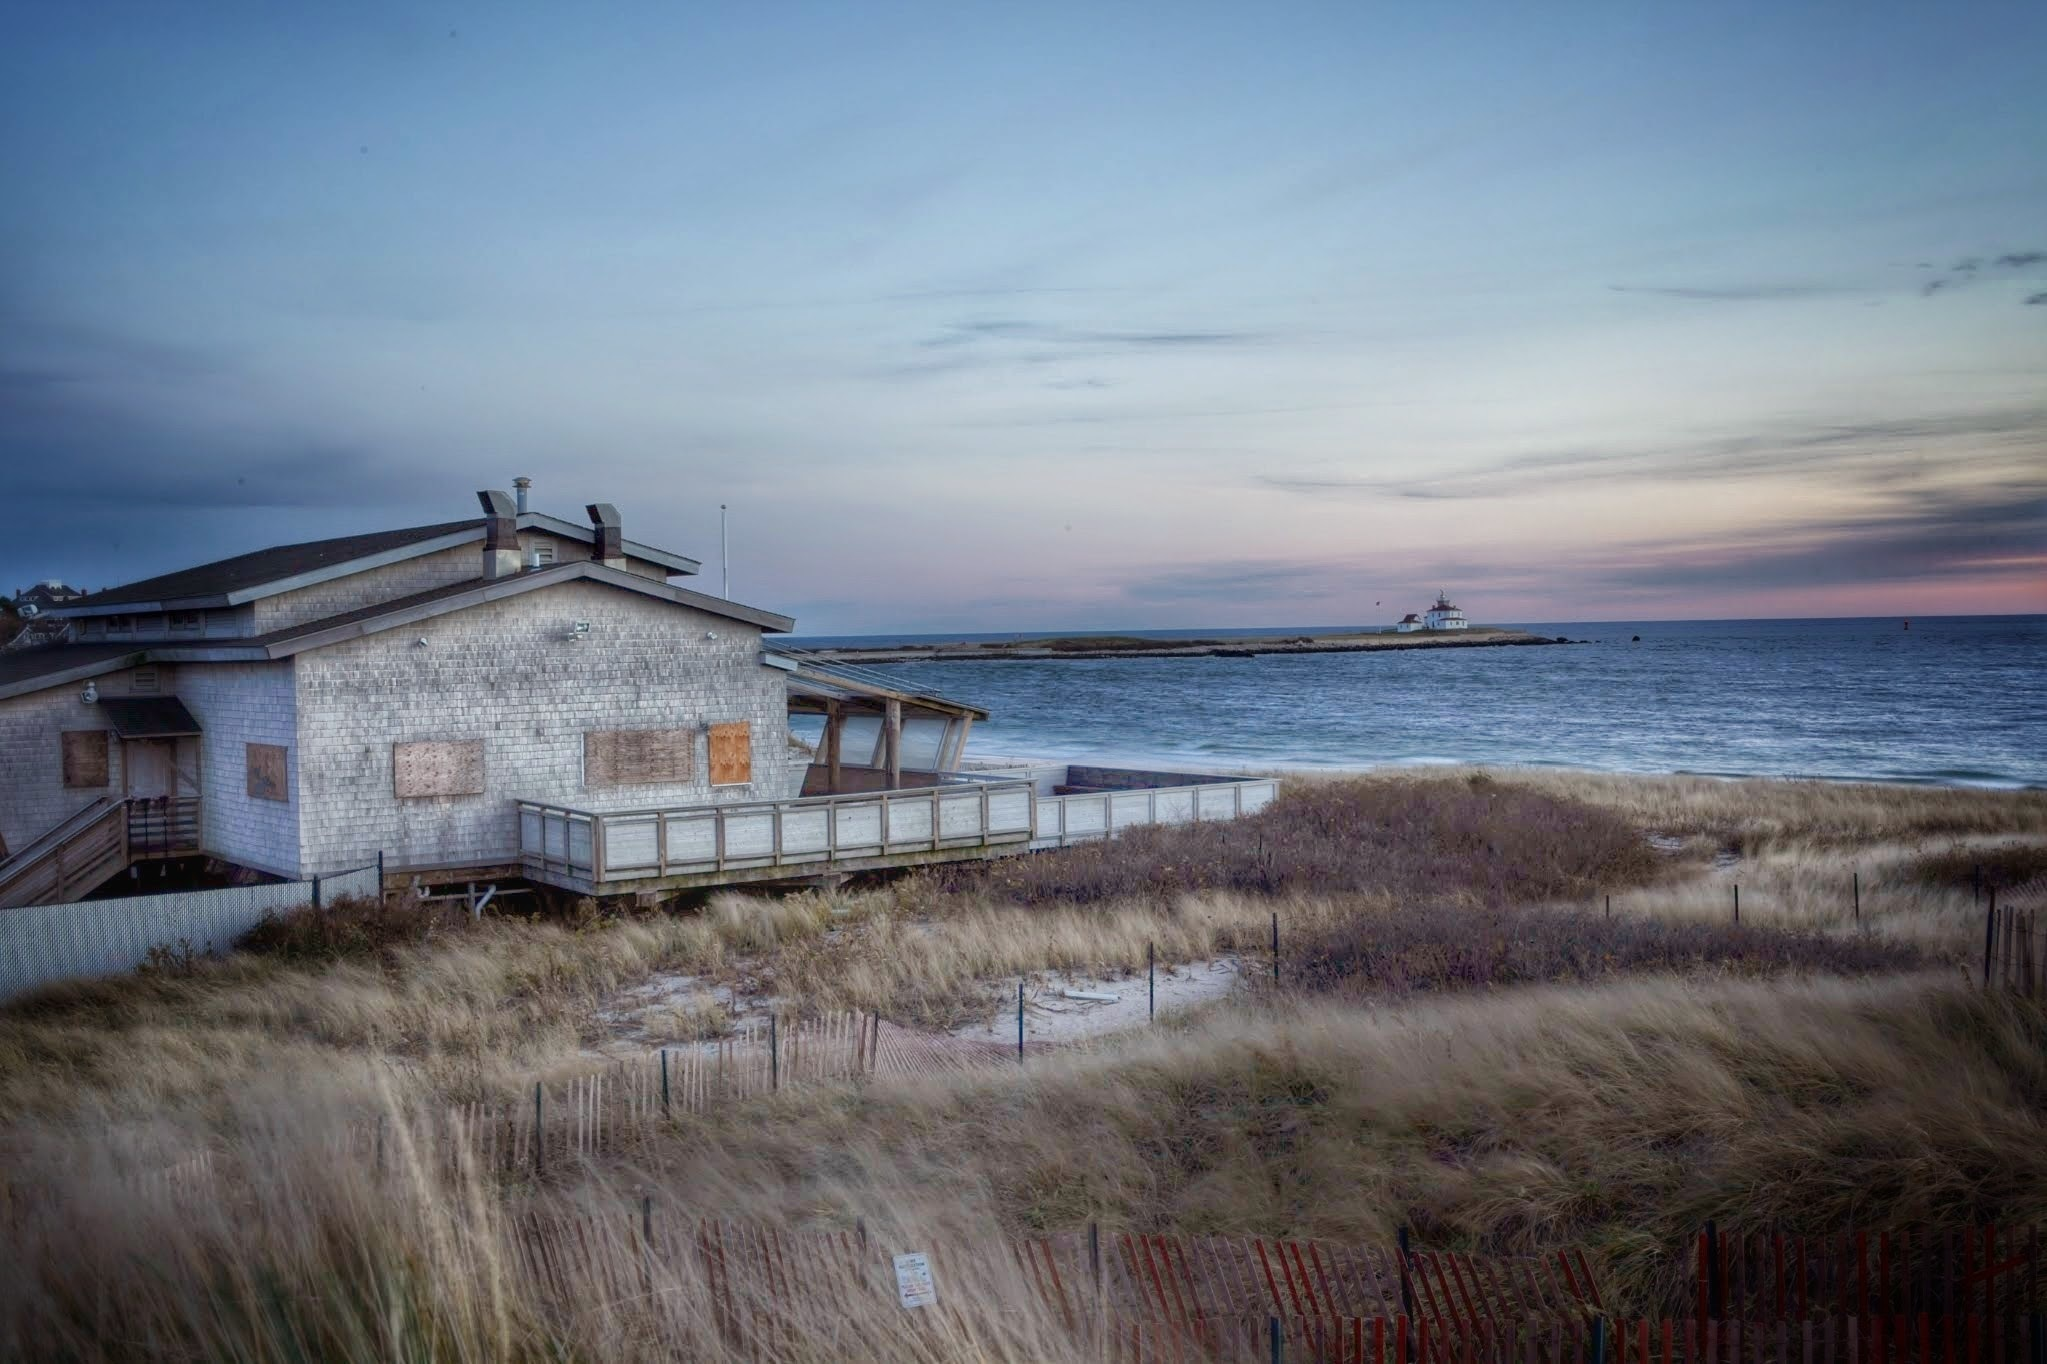 Westerly, Rhode Island, United States of America